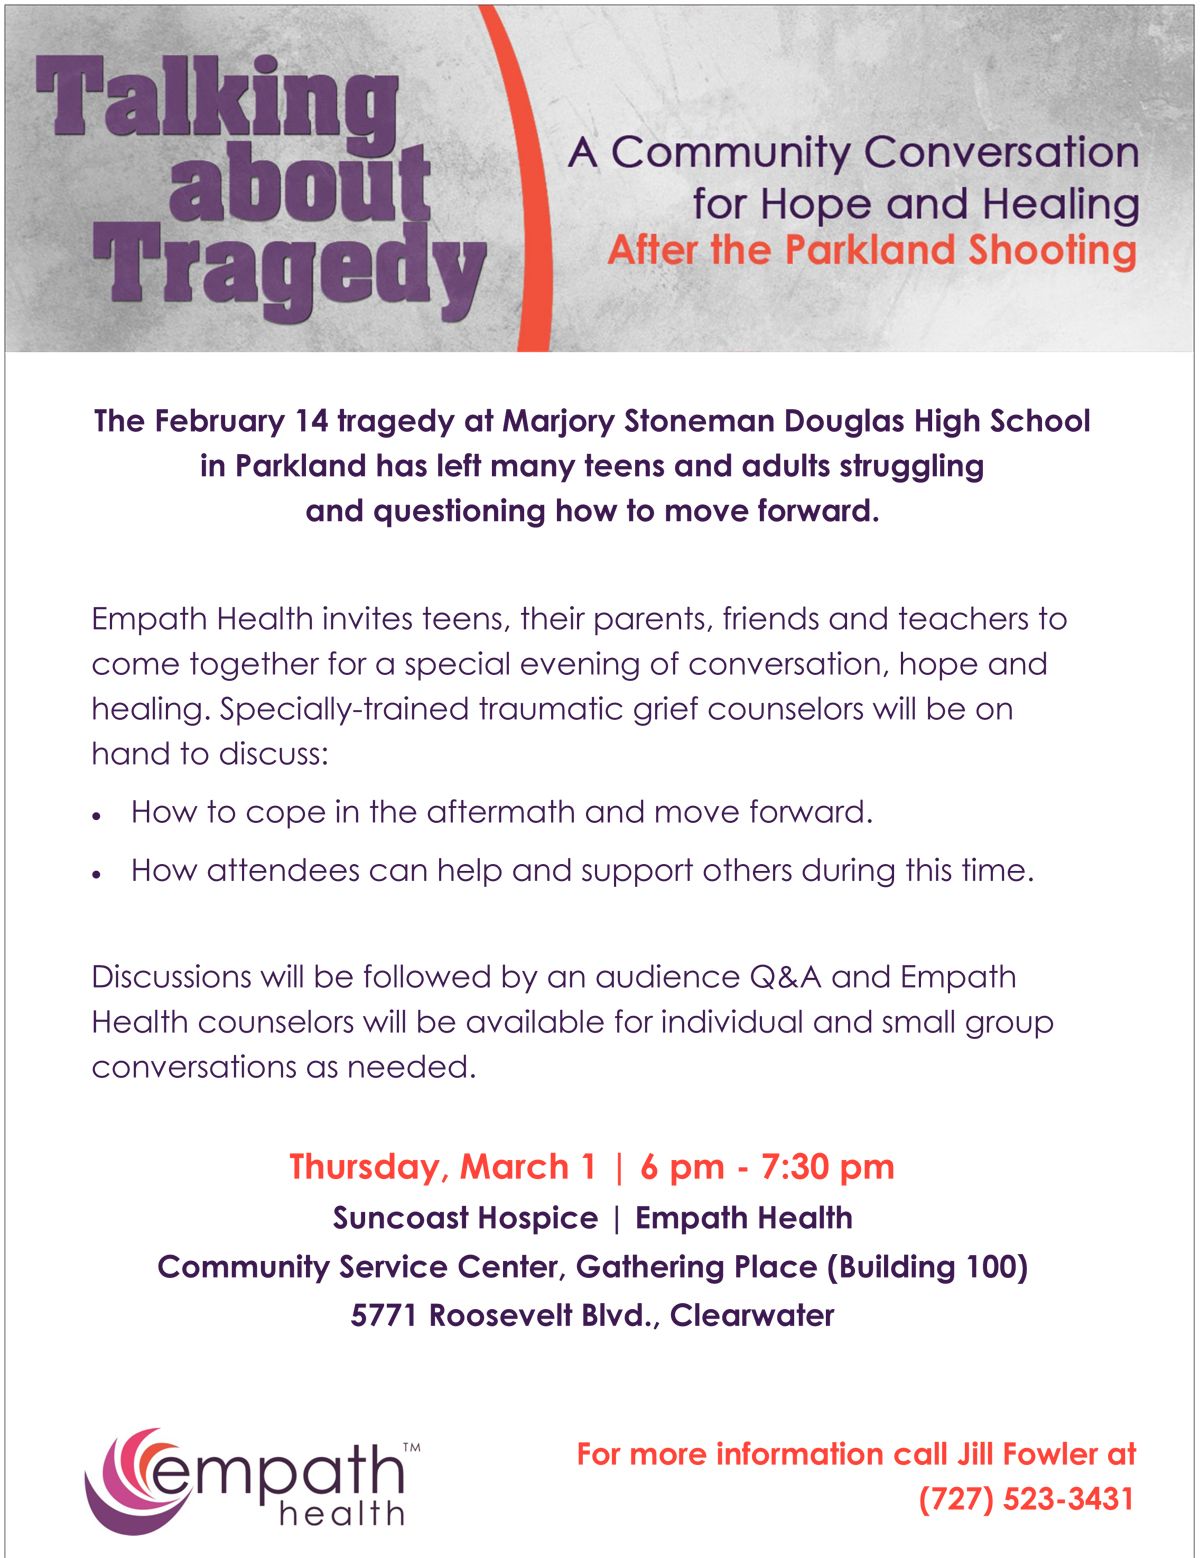 Talking About Tragedy: The Parkland Shooting @ Suncoast Hospice | Empath Health Service Center